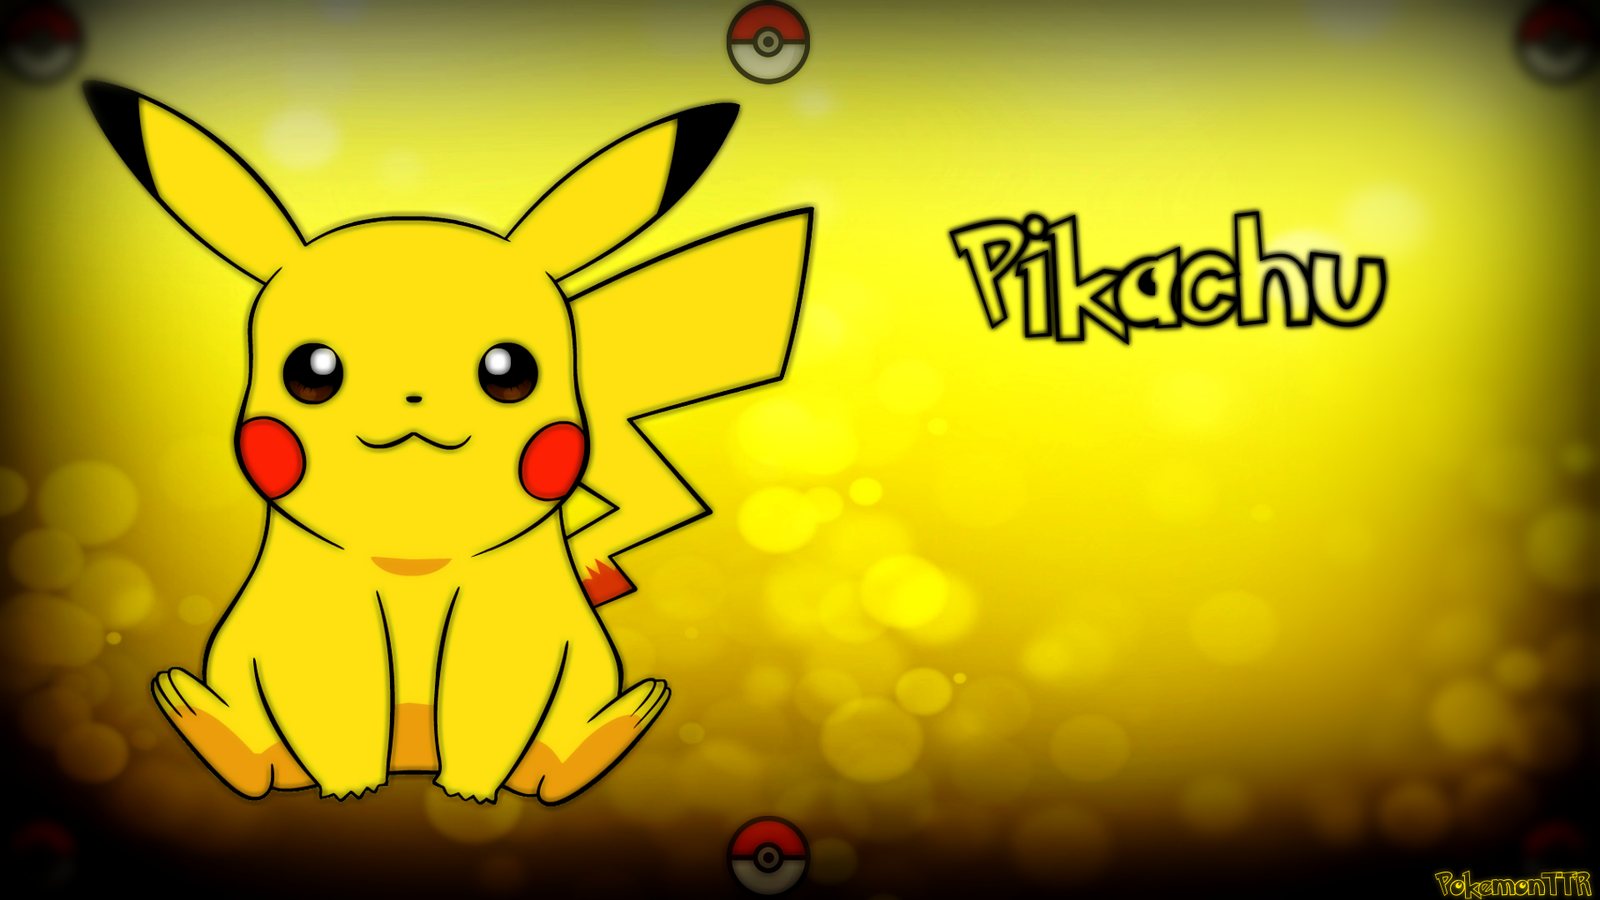 Pikachu Wallpaper Images amp Pictures   Becuo 1600x900